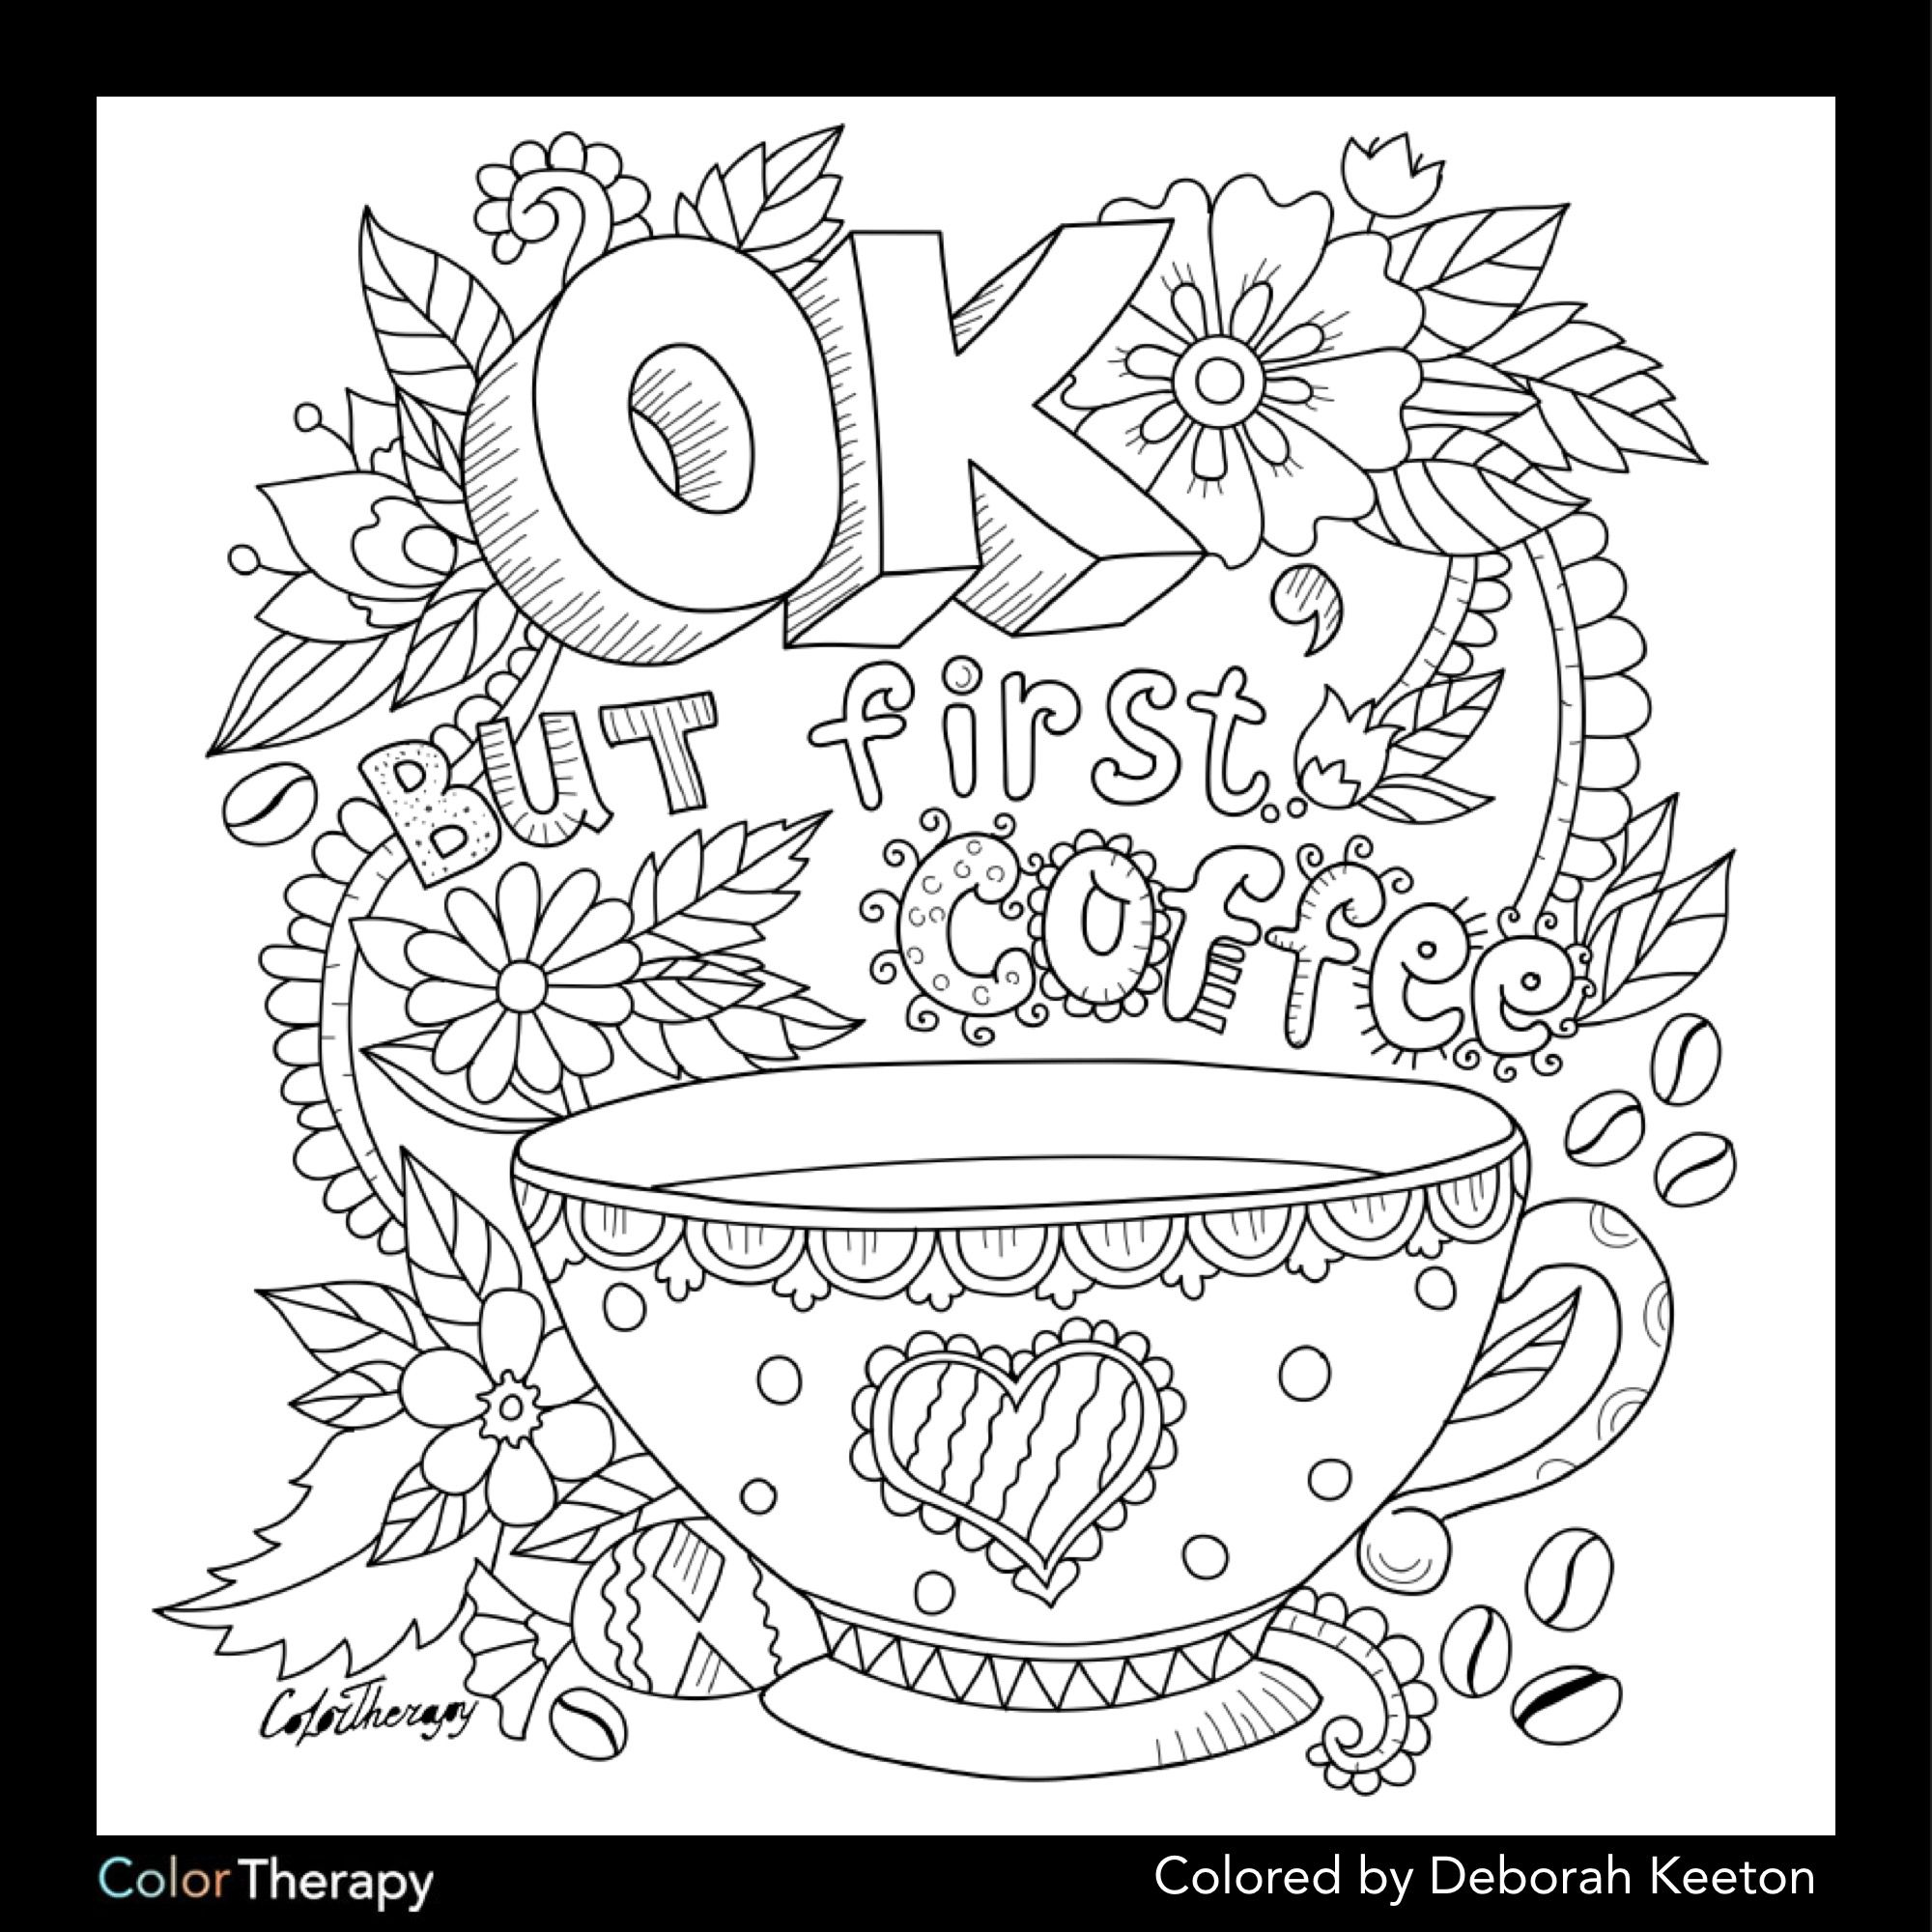 Pin By Coloring Pages For Adults On Coloring Pages Cool Coloring Pages Coloring Pages Coloring Pages For Grown Ups